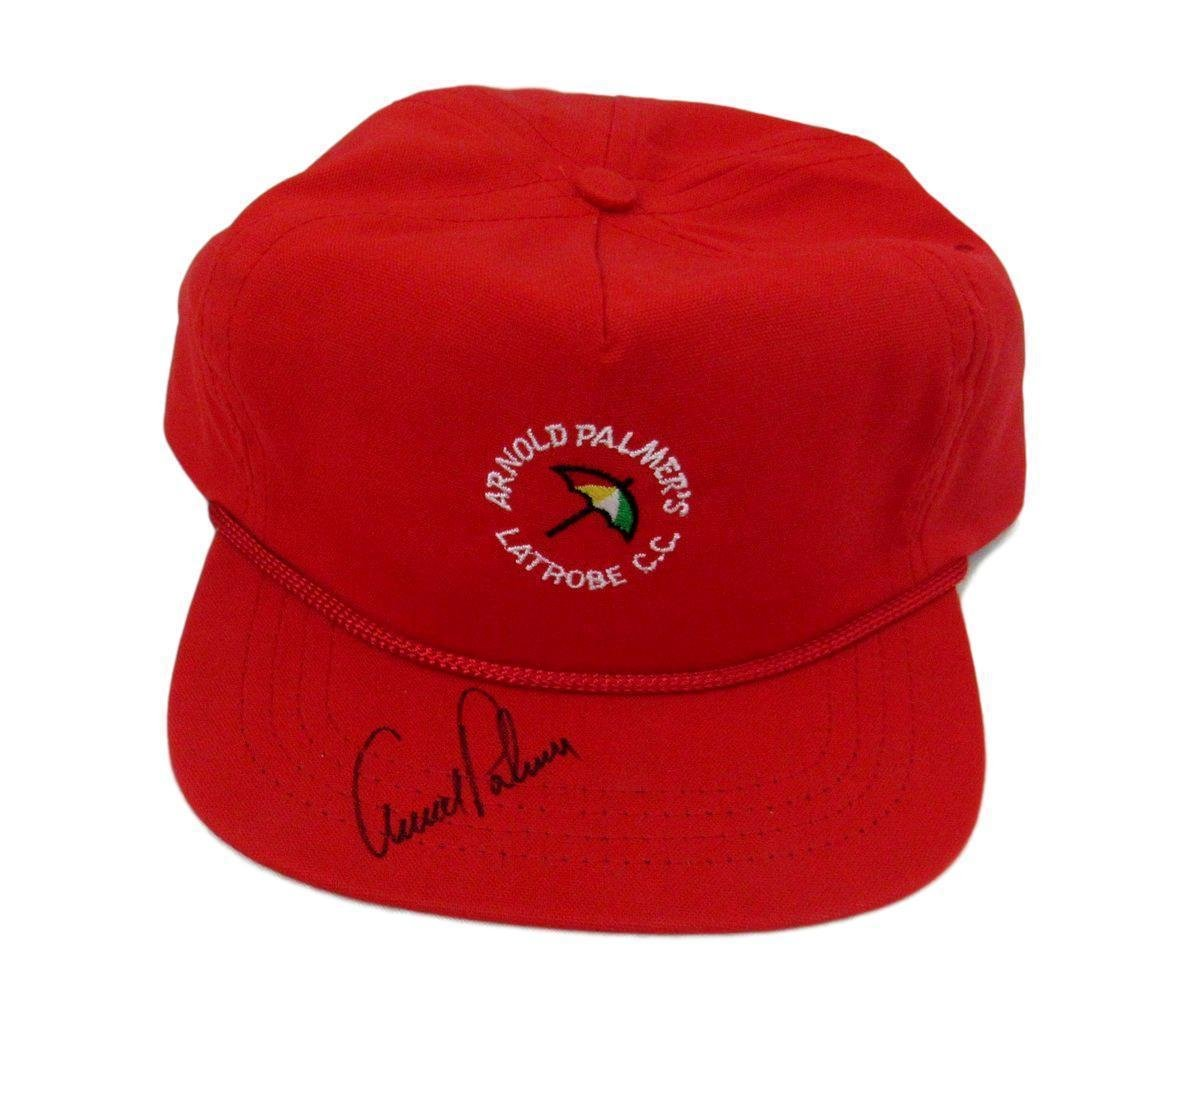 Arnold Palmer Autographed/Signed Latrobe County Club Hat 136872 JSA Certified Autographed Golf Hats and Visors